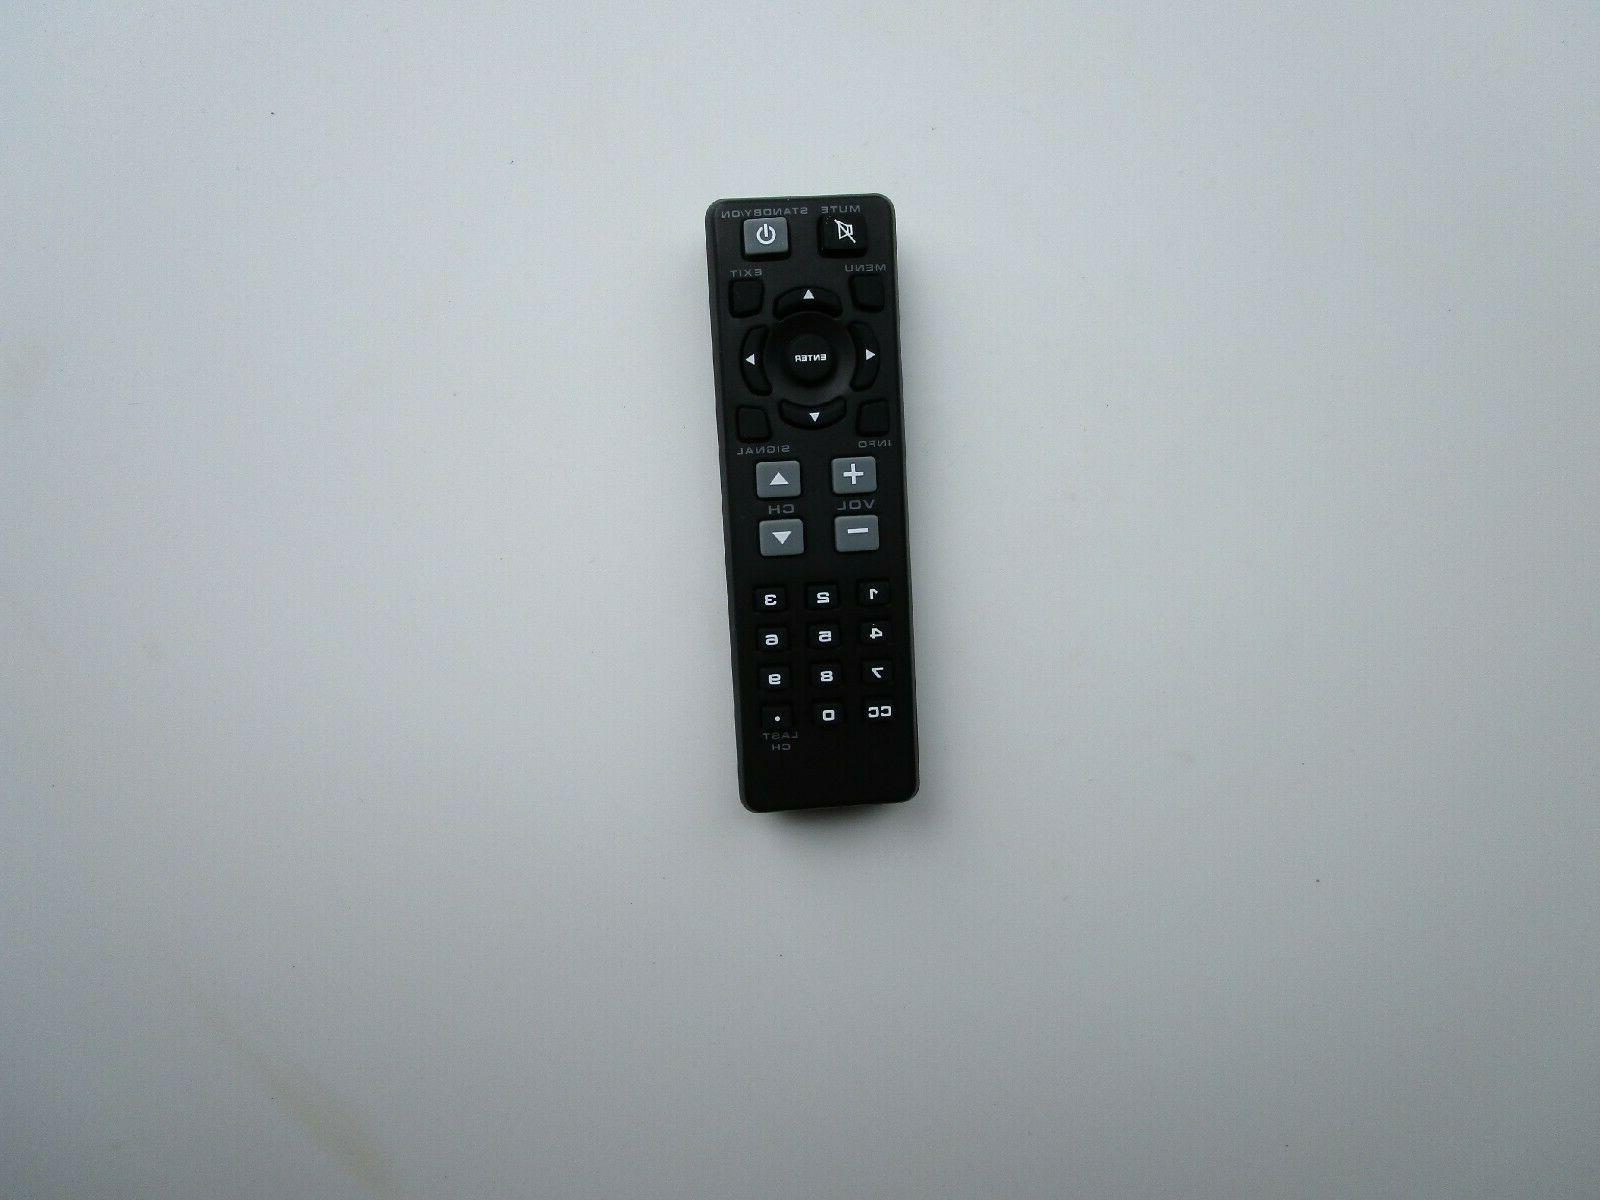 remote control for rca stb7766c stb7766g stb7766g1